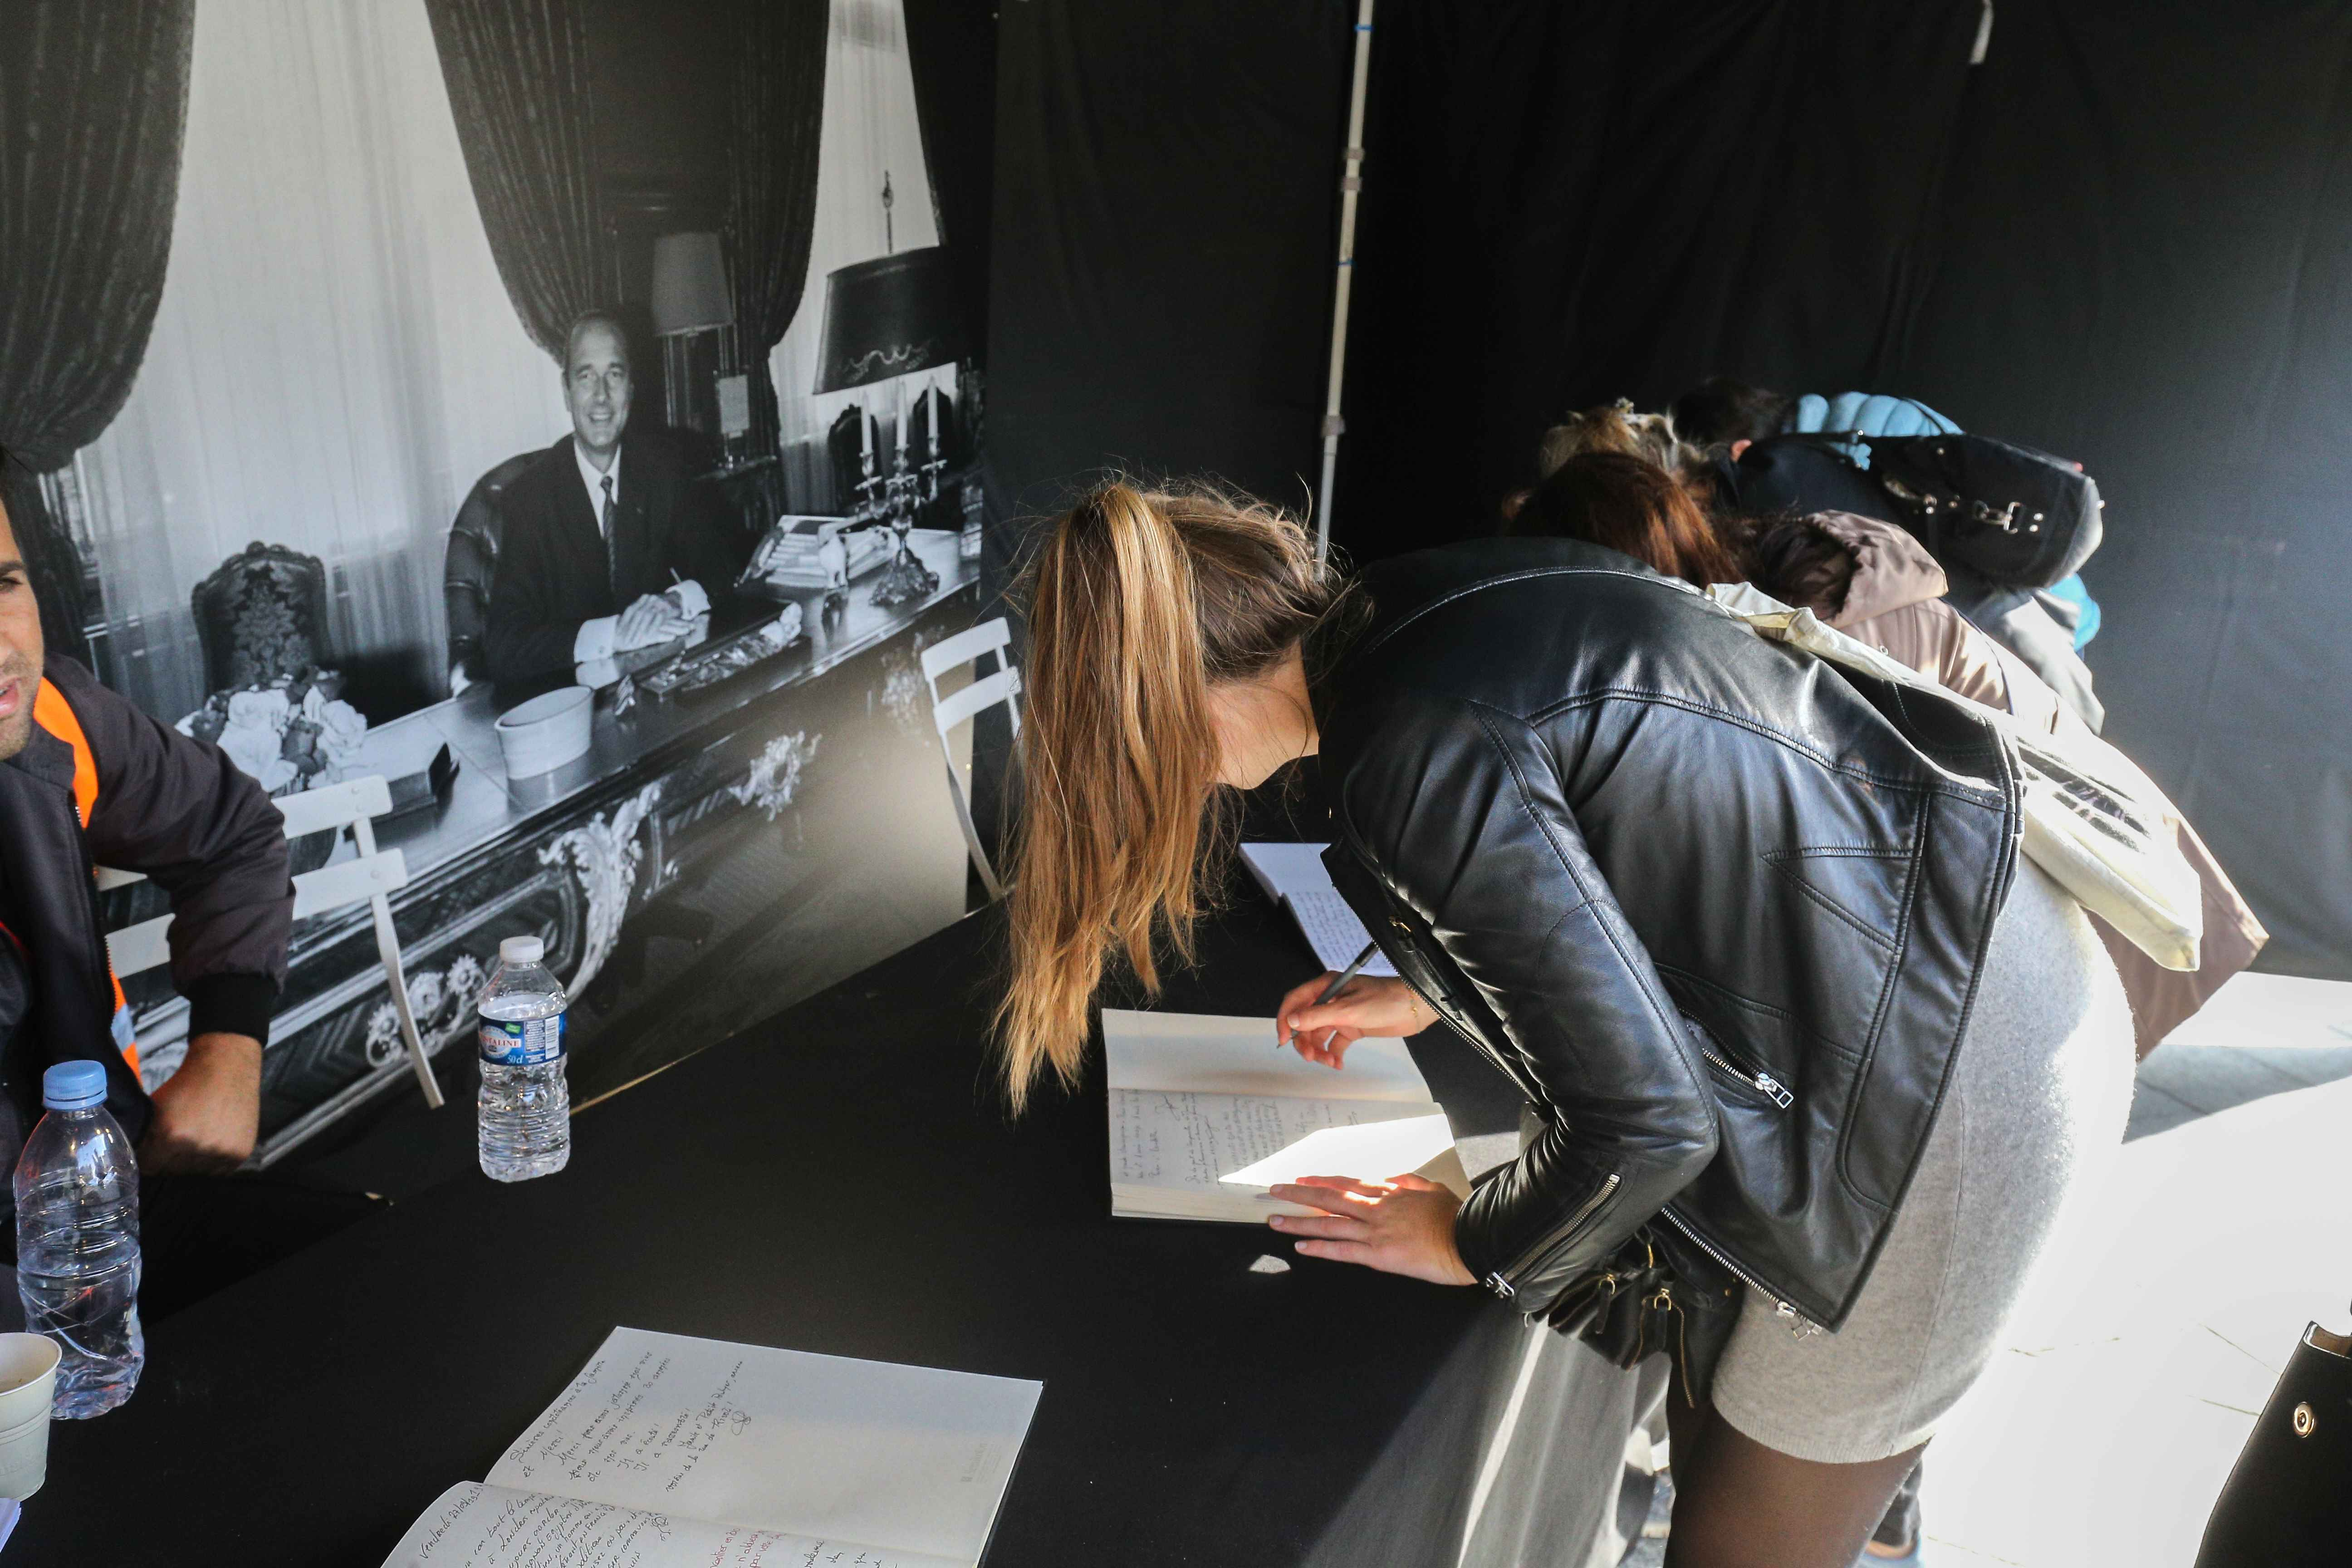 A woman signs a condolence register for late former French President Jacques Chirac in front of the City Hall square of Paris on September 28, 2019. Former French president Jacques Chirac died on September 26 at the age of 86 after a long battle with deter